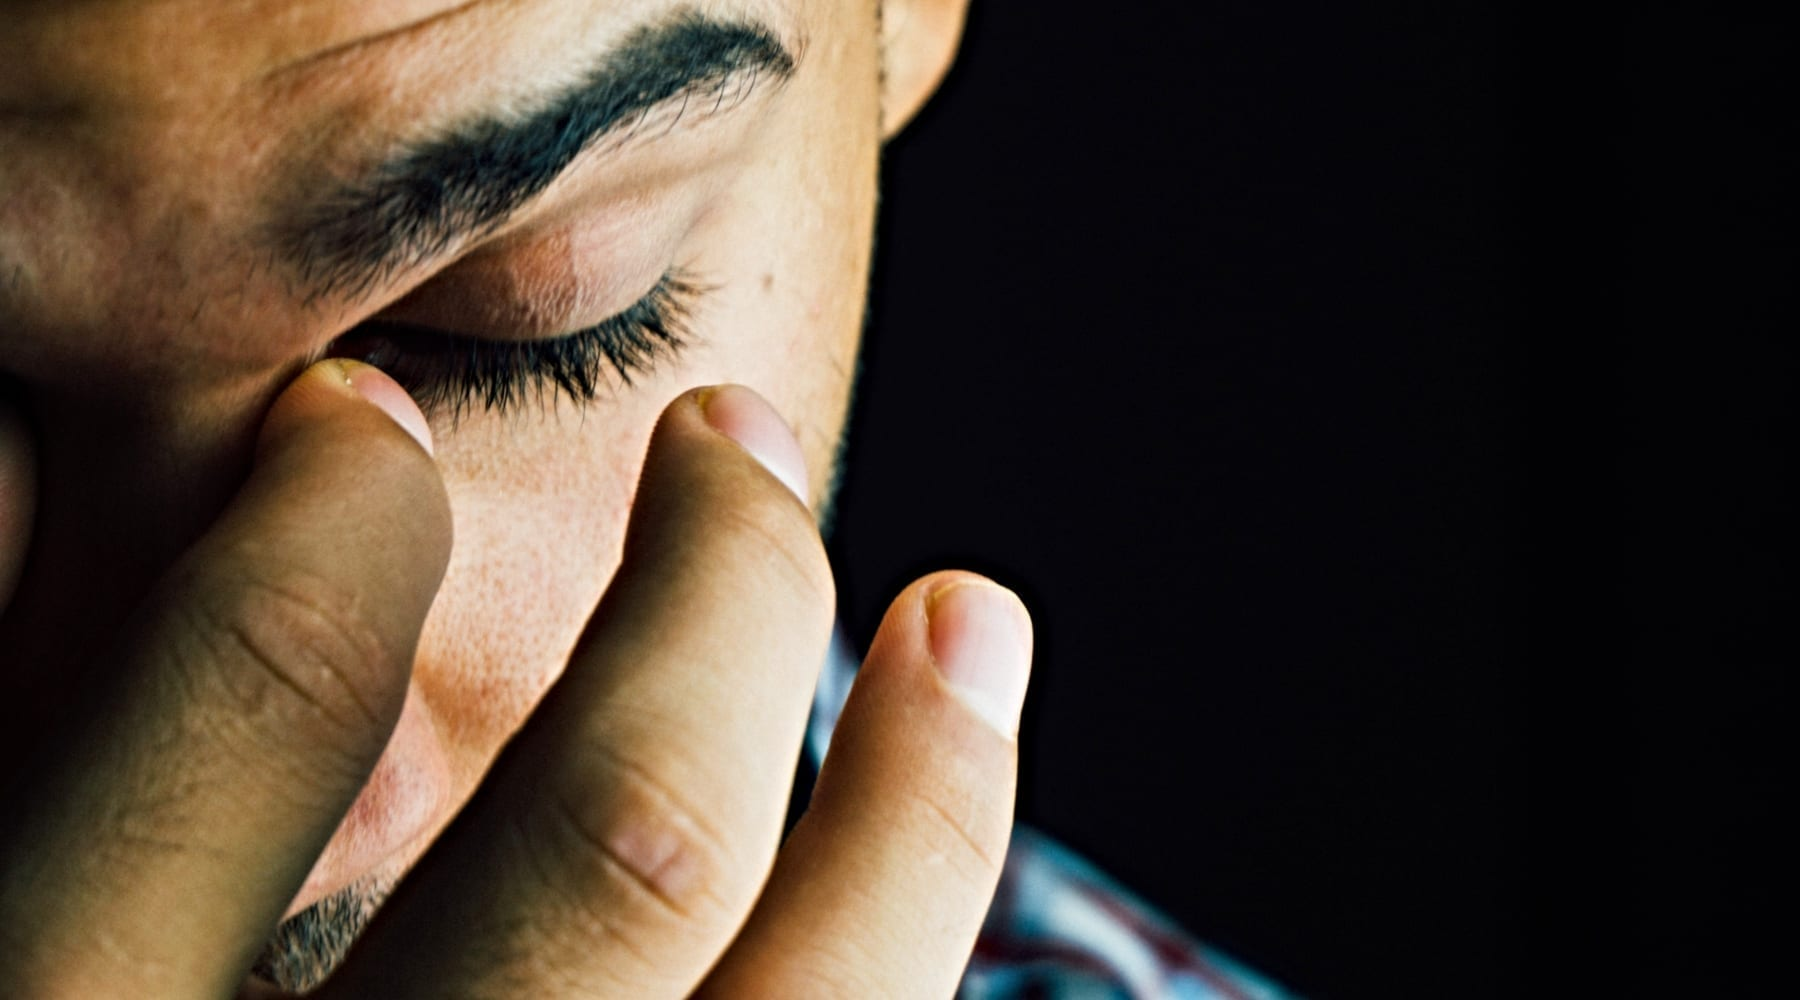 A man looking tired with hands on his face